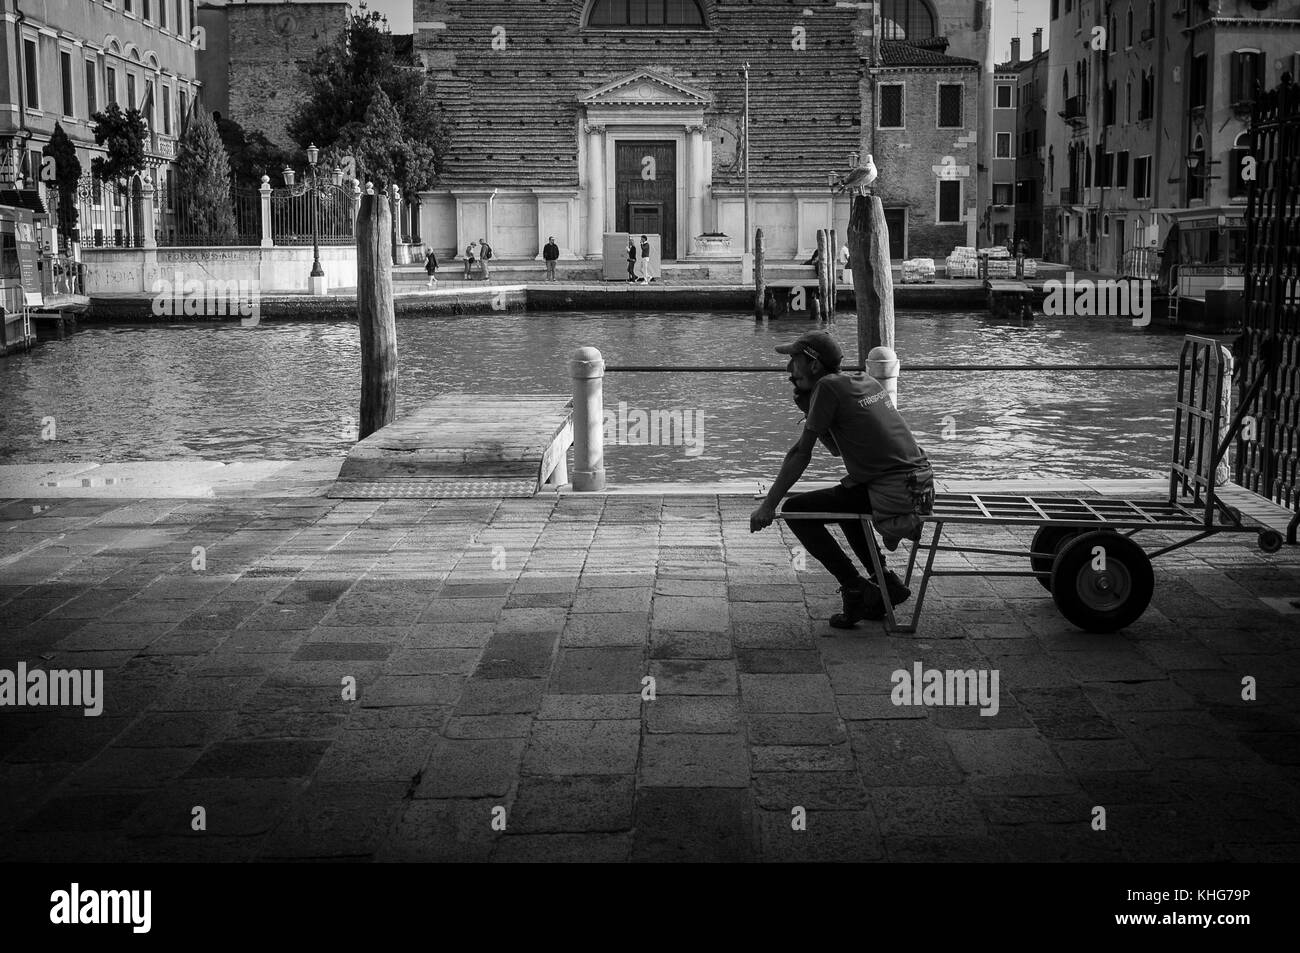 End of the working day in Venice for this delivery man or is he just waiting for the next load to be drop off for - Stock Image